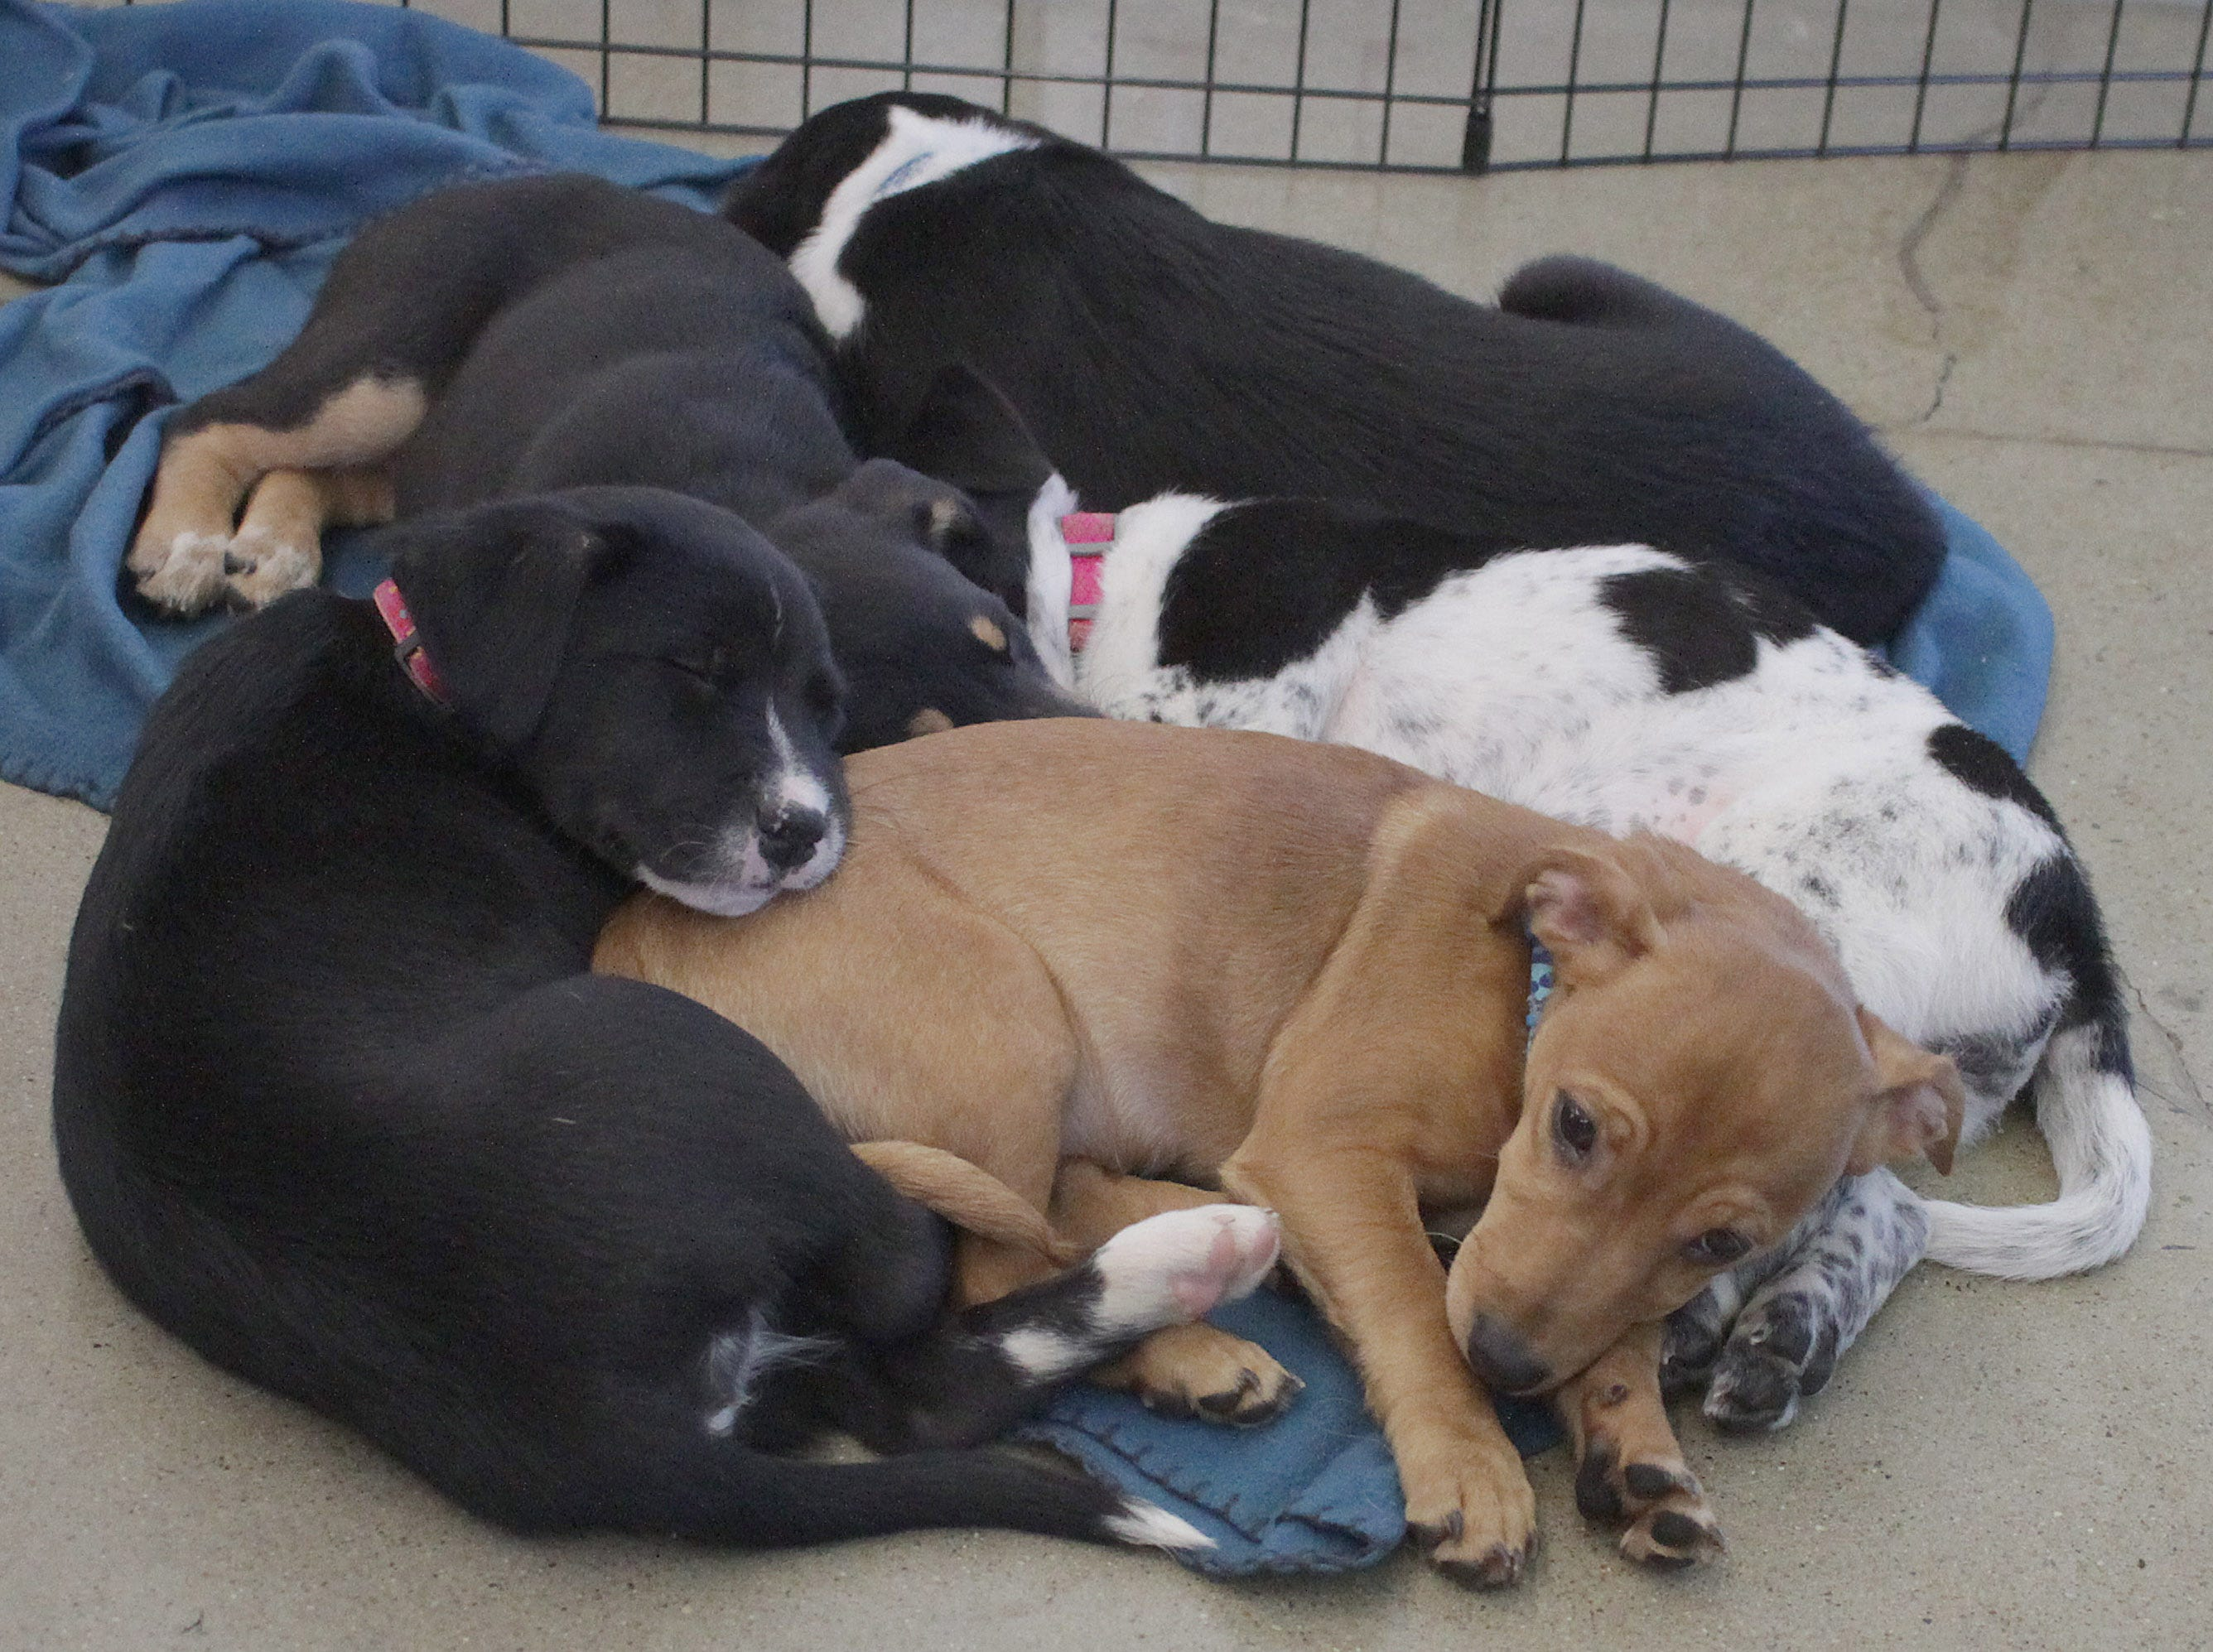 After playing with plenty of people the puppies crashed at Jojo's Doghouse adoption event in Hendersonville, TN on Saturday, January 5, 2019.